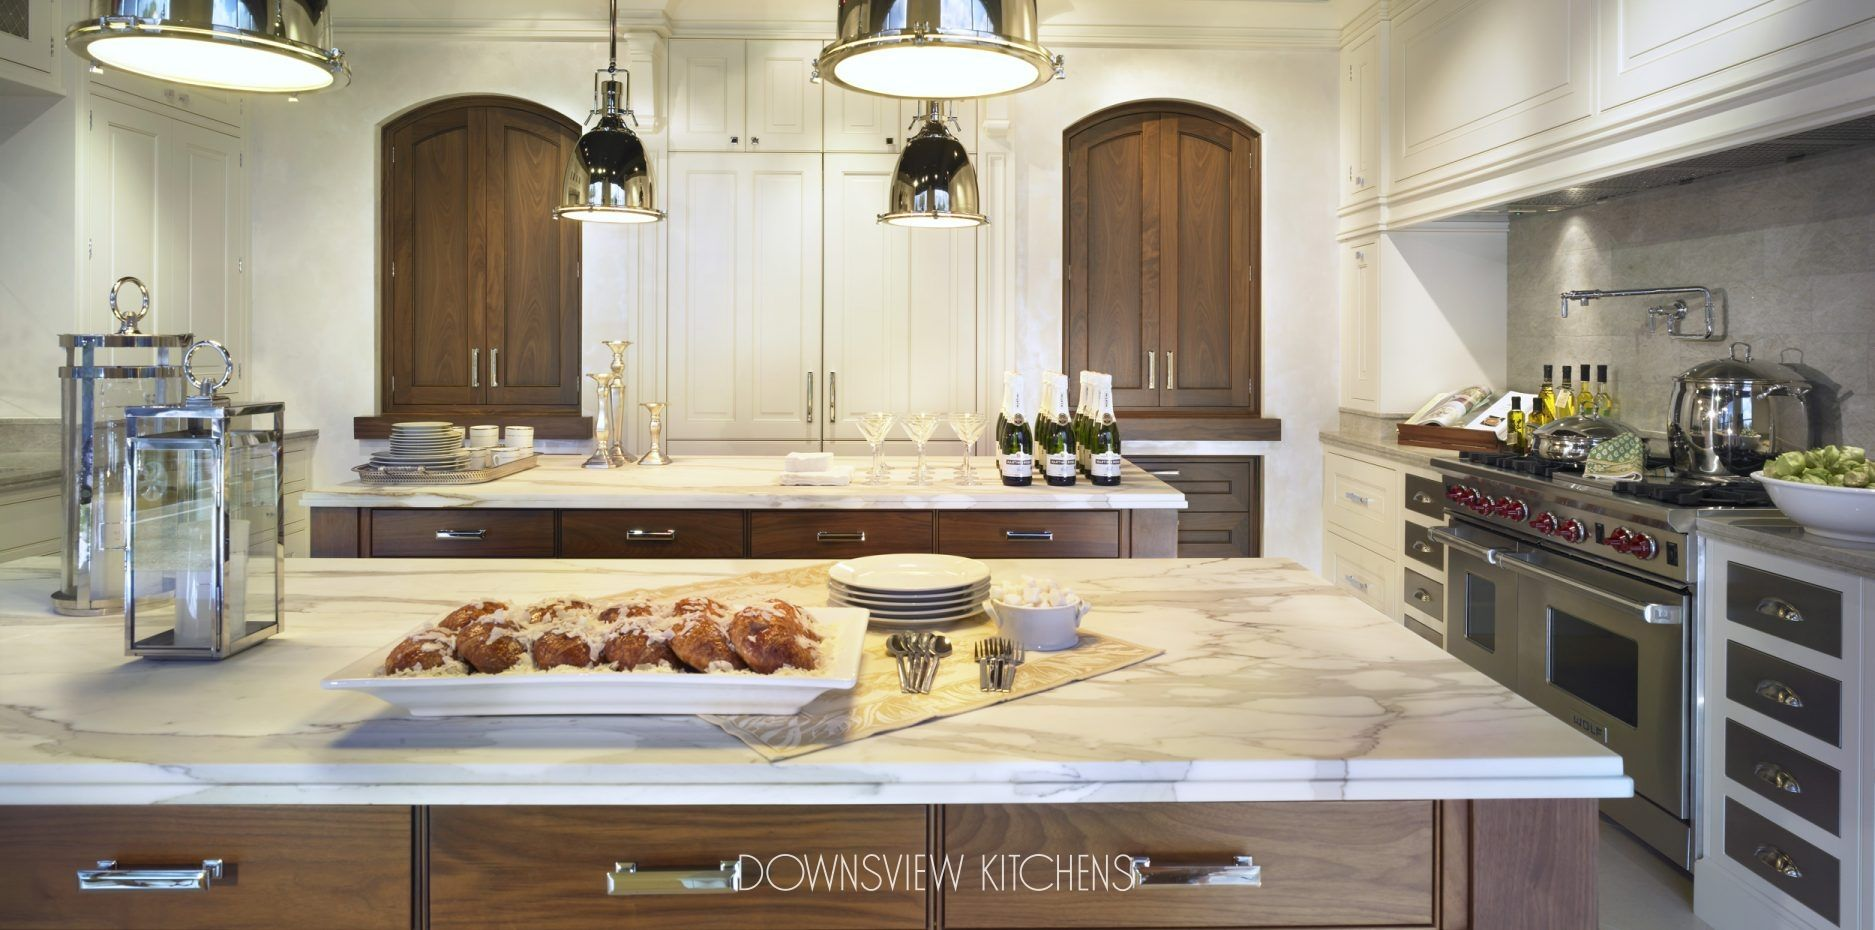 Tale Of Two Islands Downsview Kitchens And Fine Custom Cabinetry Manufacturers Of Custom Kitchen Cab Custom Kitchen Cabinets Kitchen Design Custom Kitchens